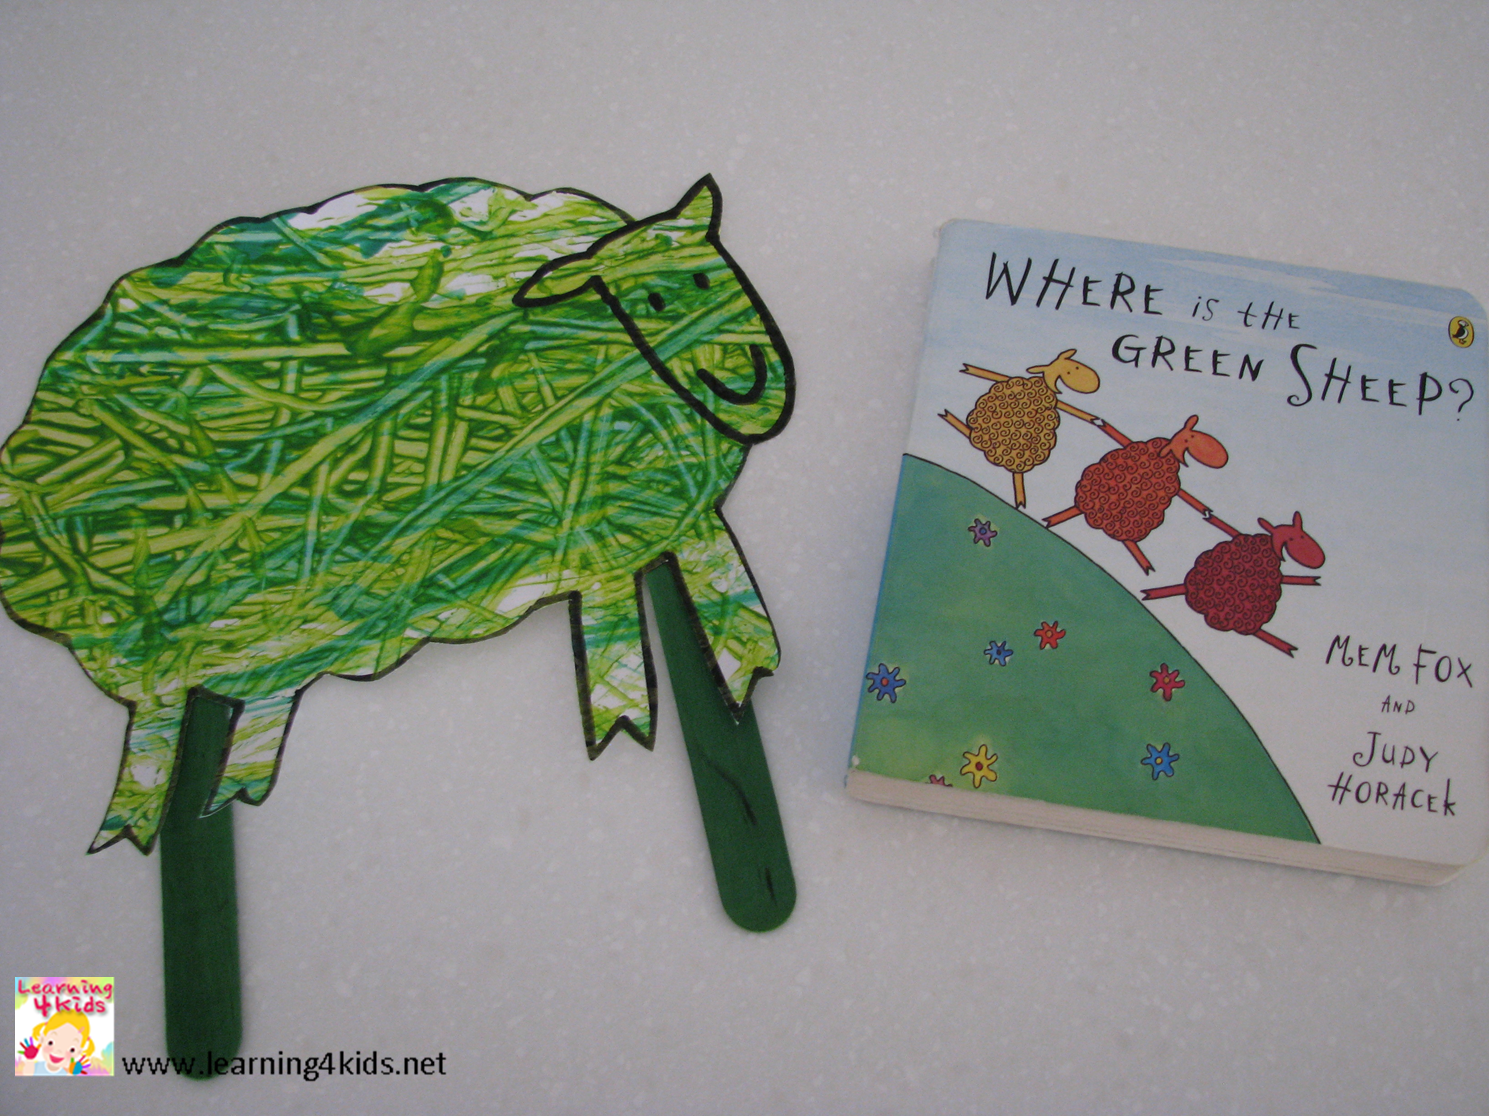 Colour shades activities - Colour Green Activities Some Activity Ideas Using The Book Where Is The Green Sheep